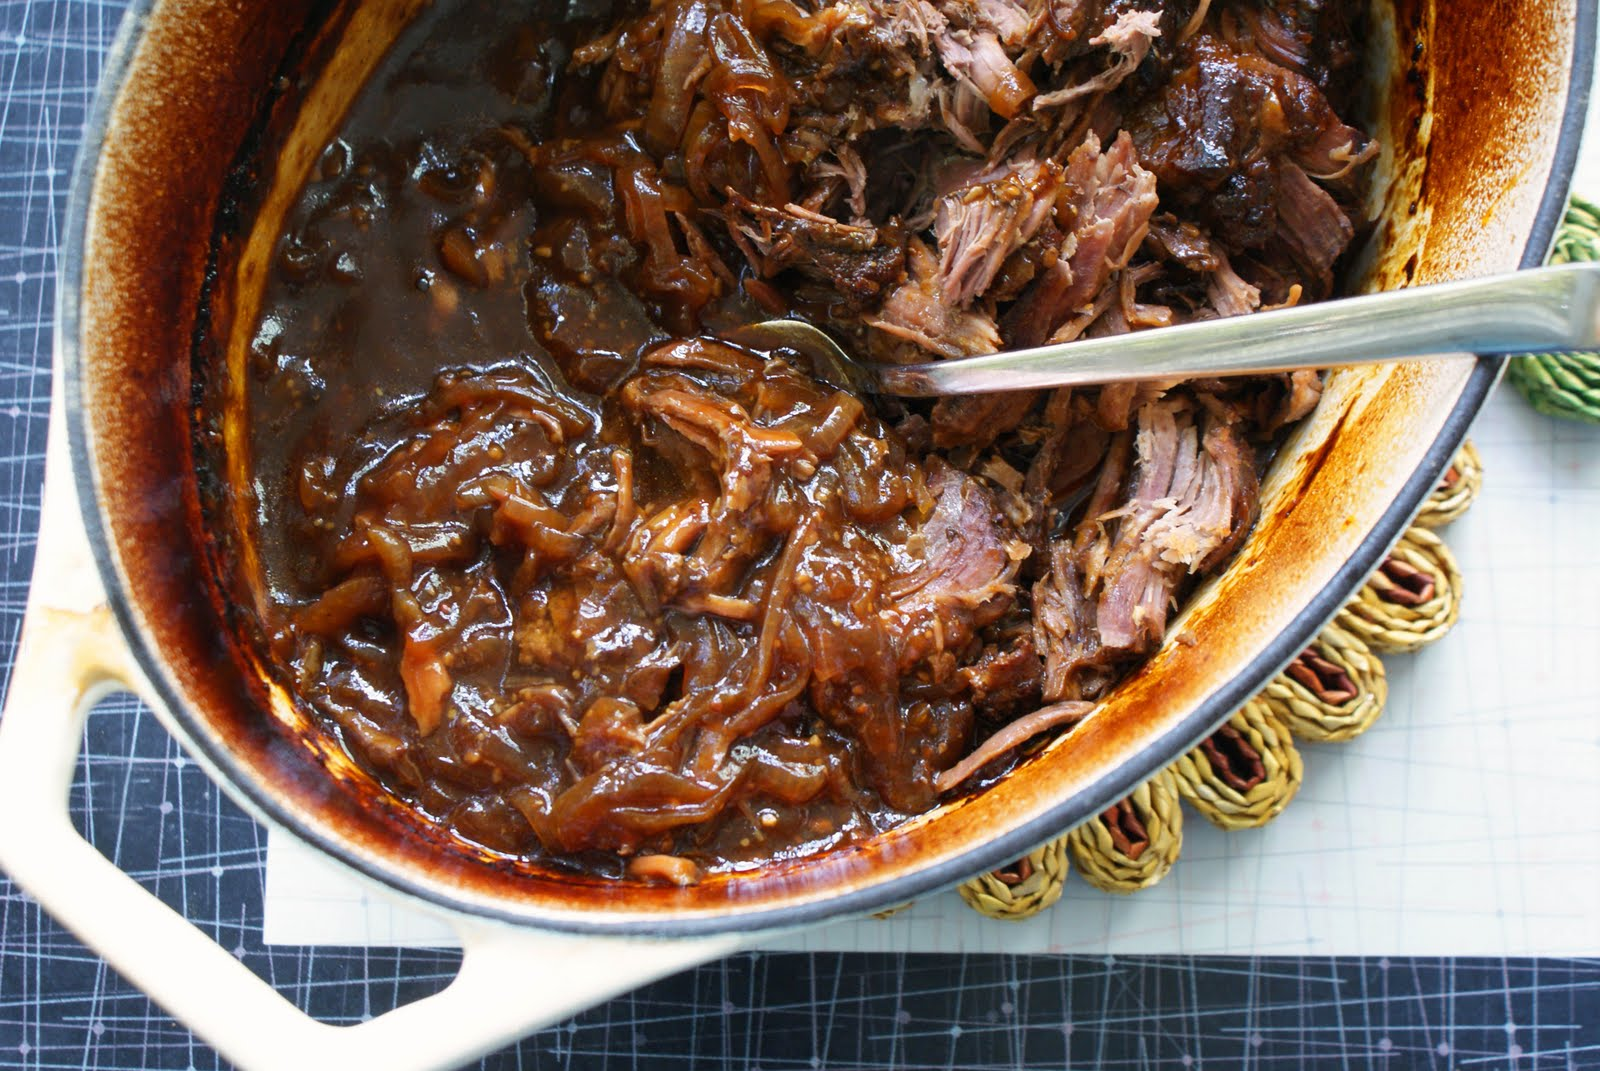 Braised beef pulled